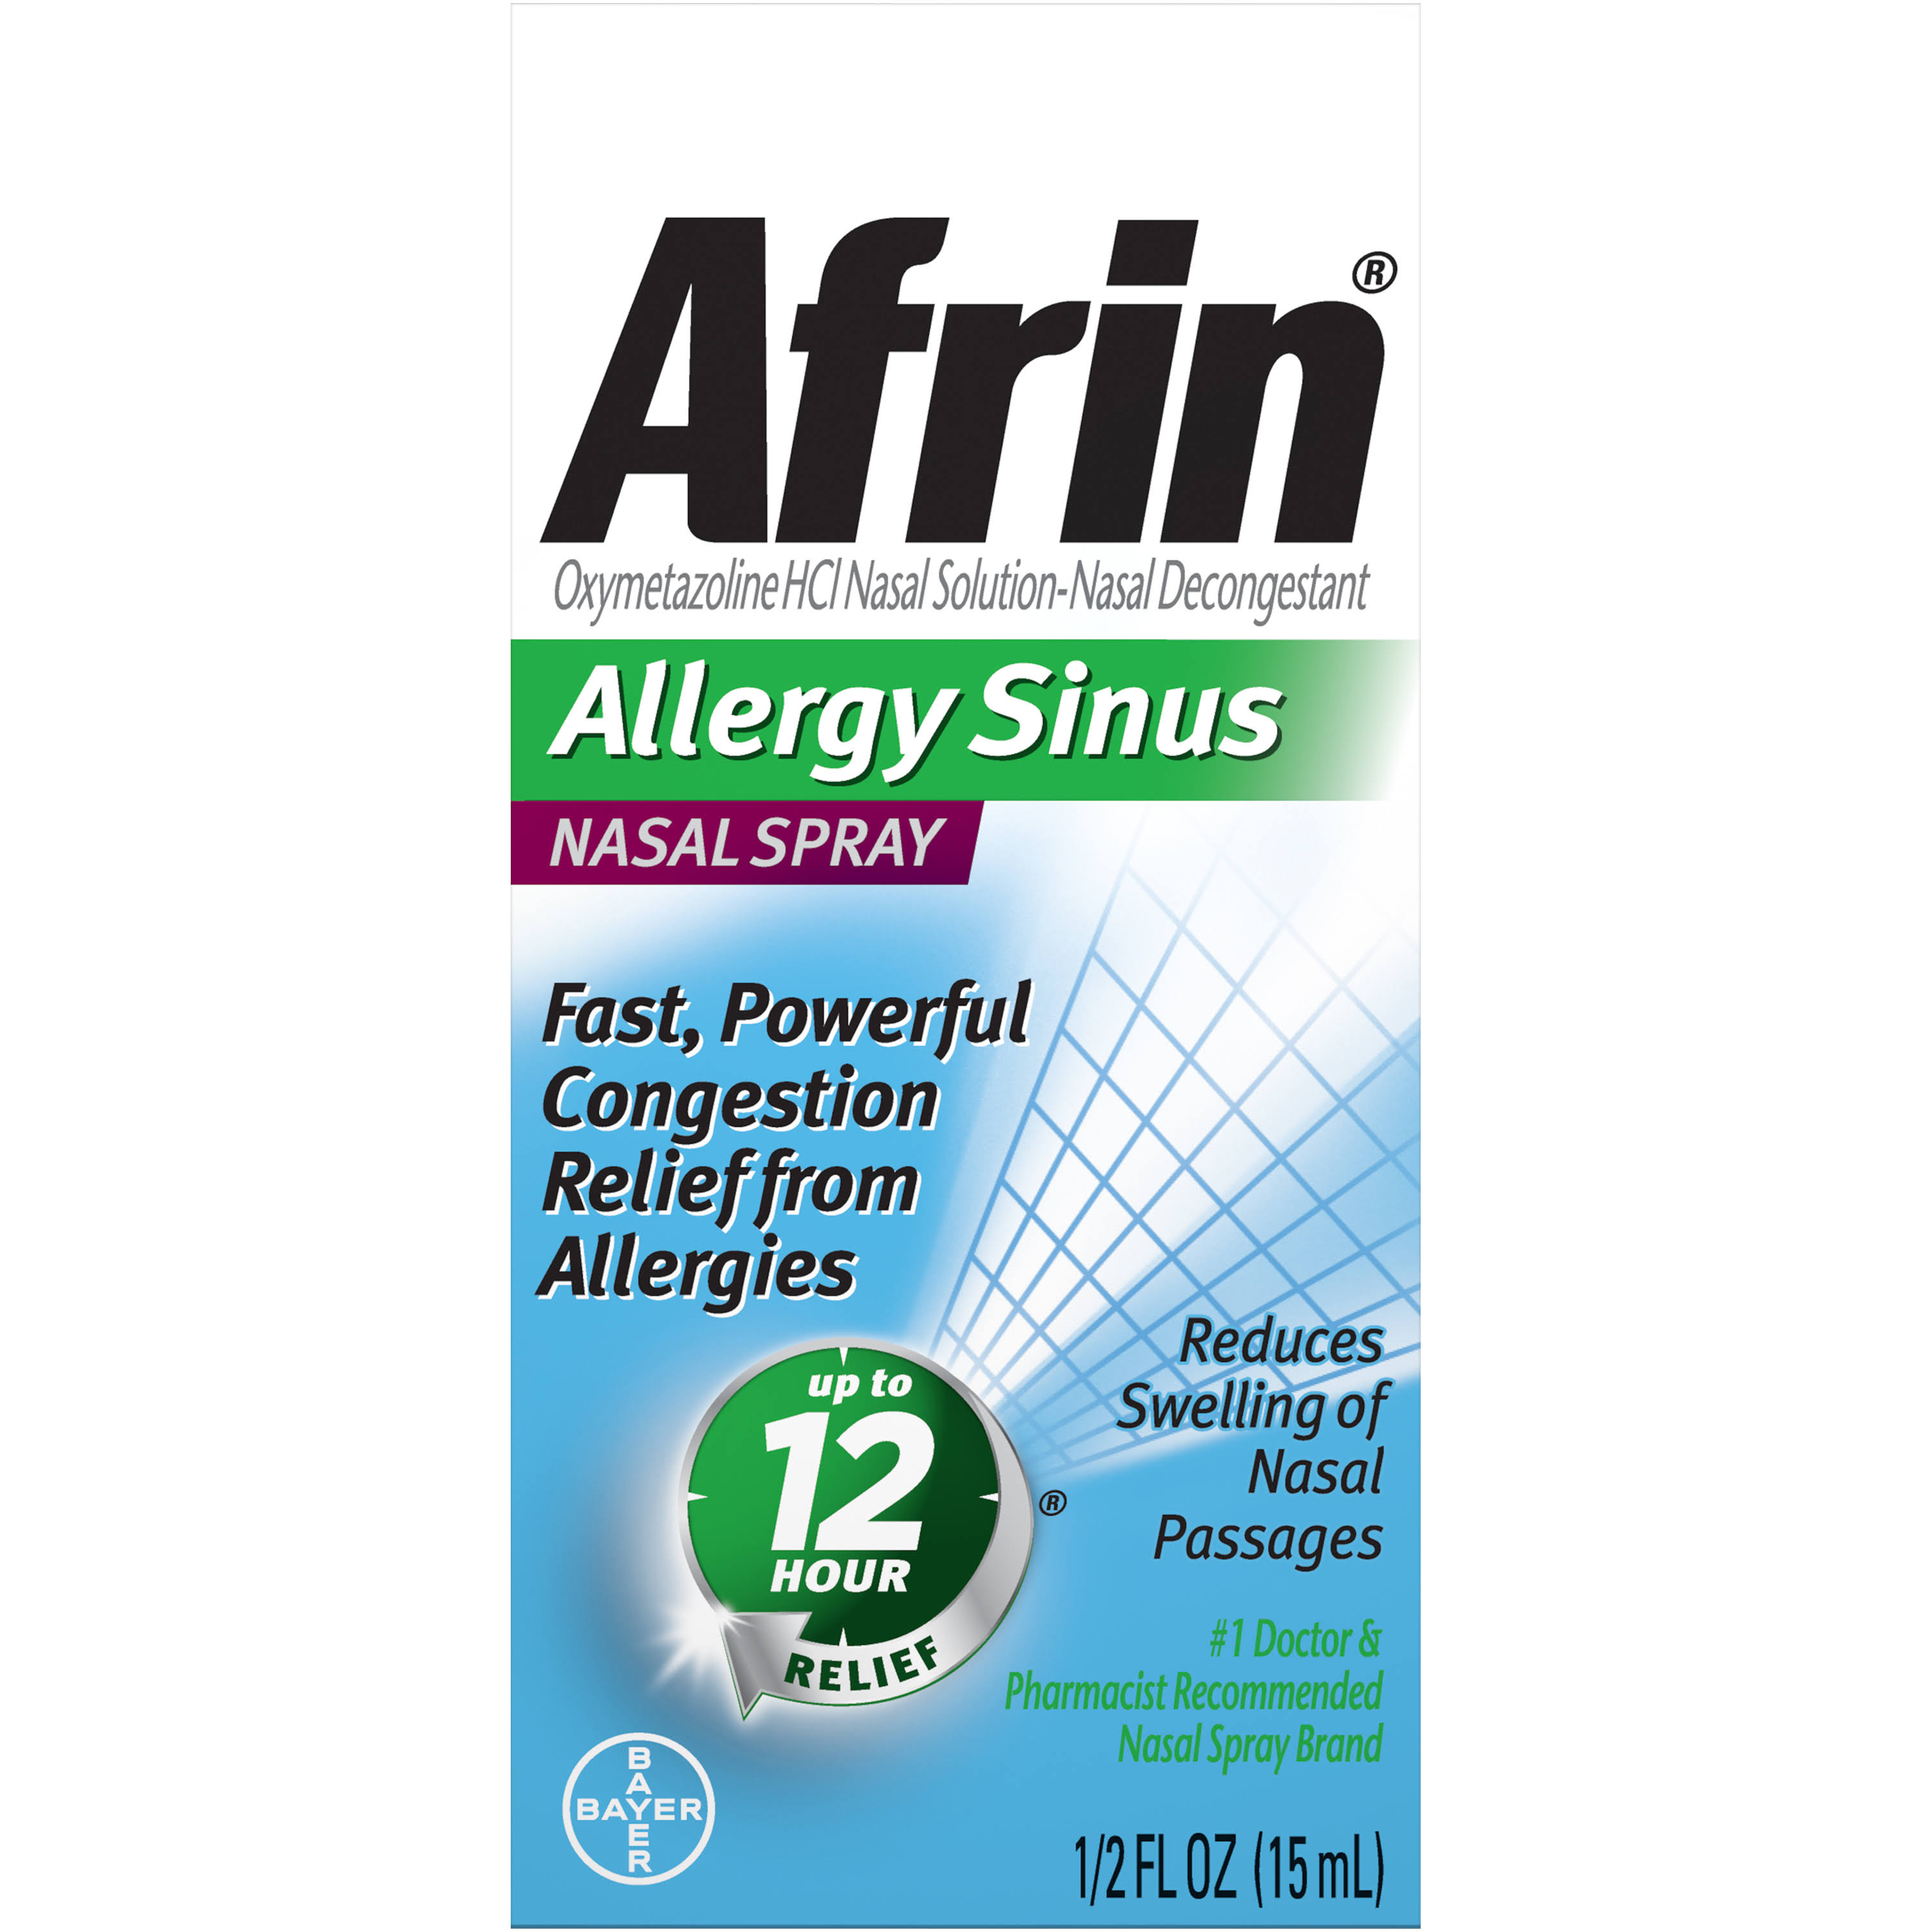 Afrin Allergy Sinus Nasal Spray - 15ml